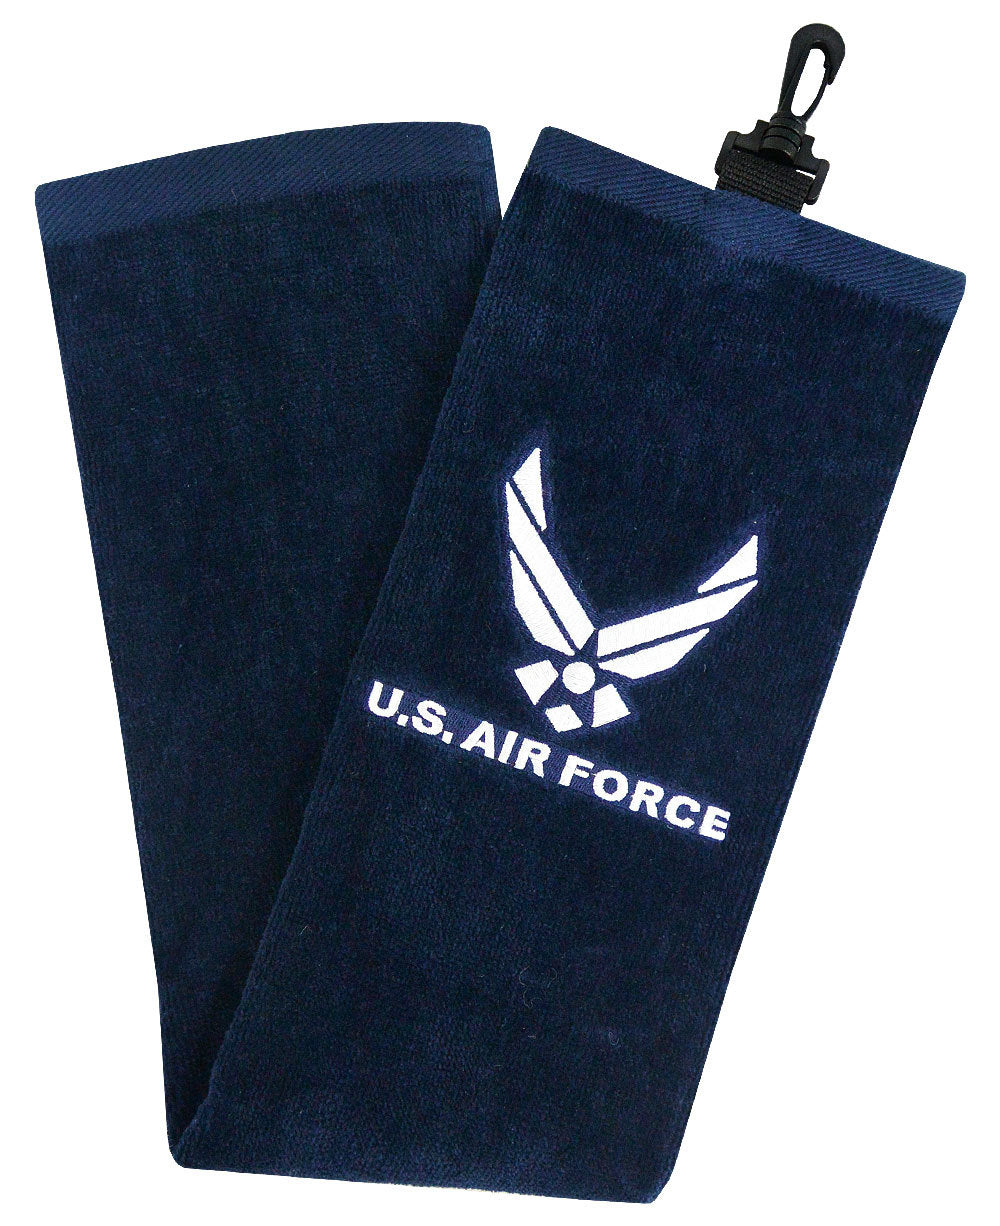 Hot-Z Military Tri Fold Towel